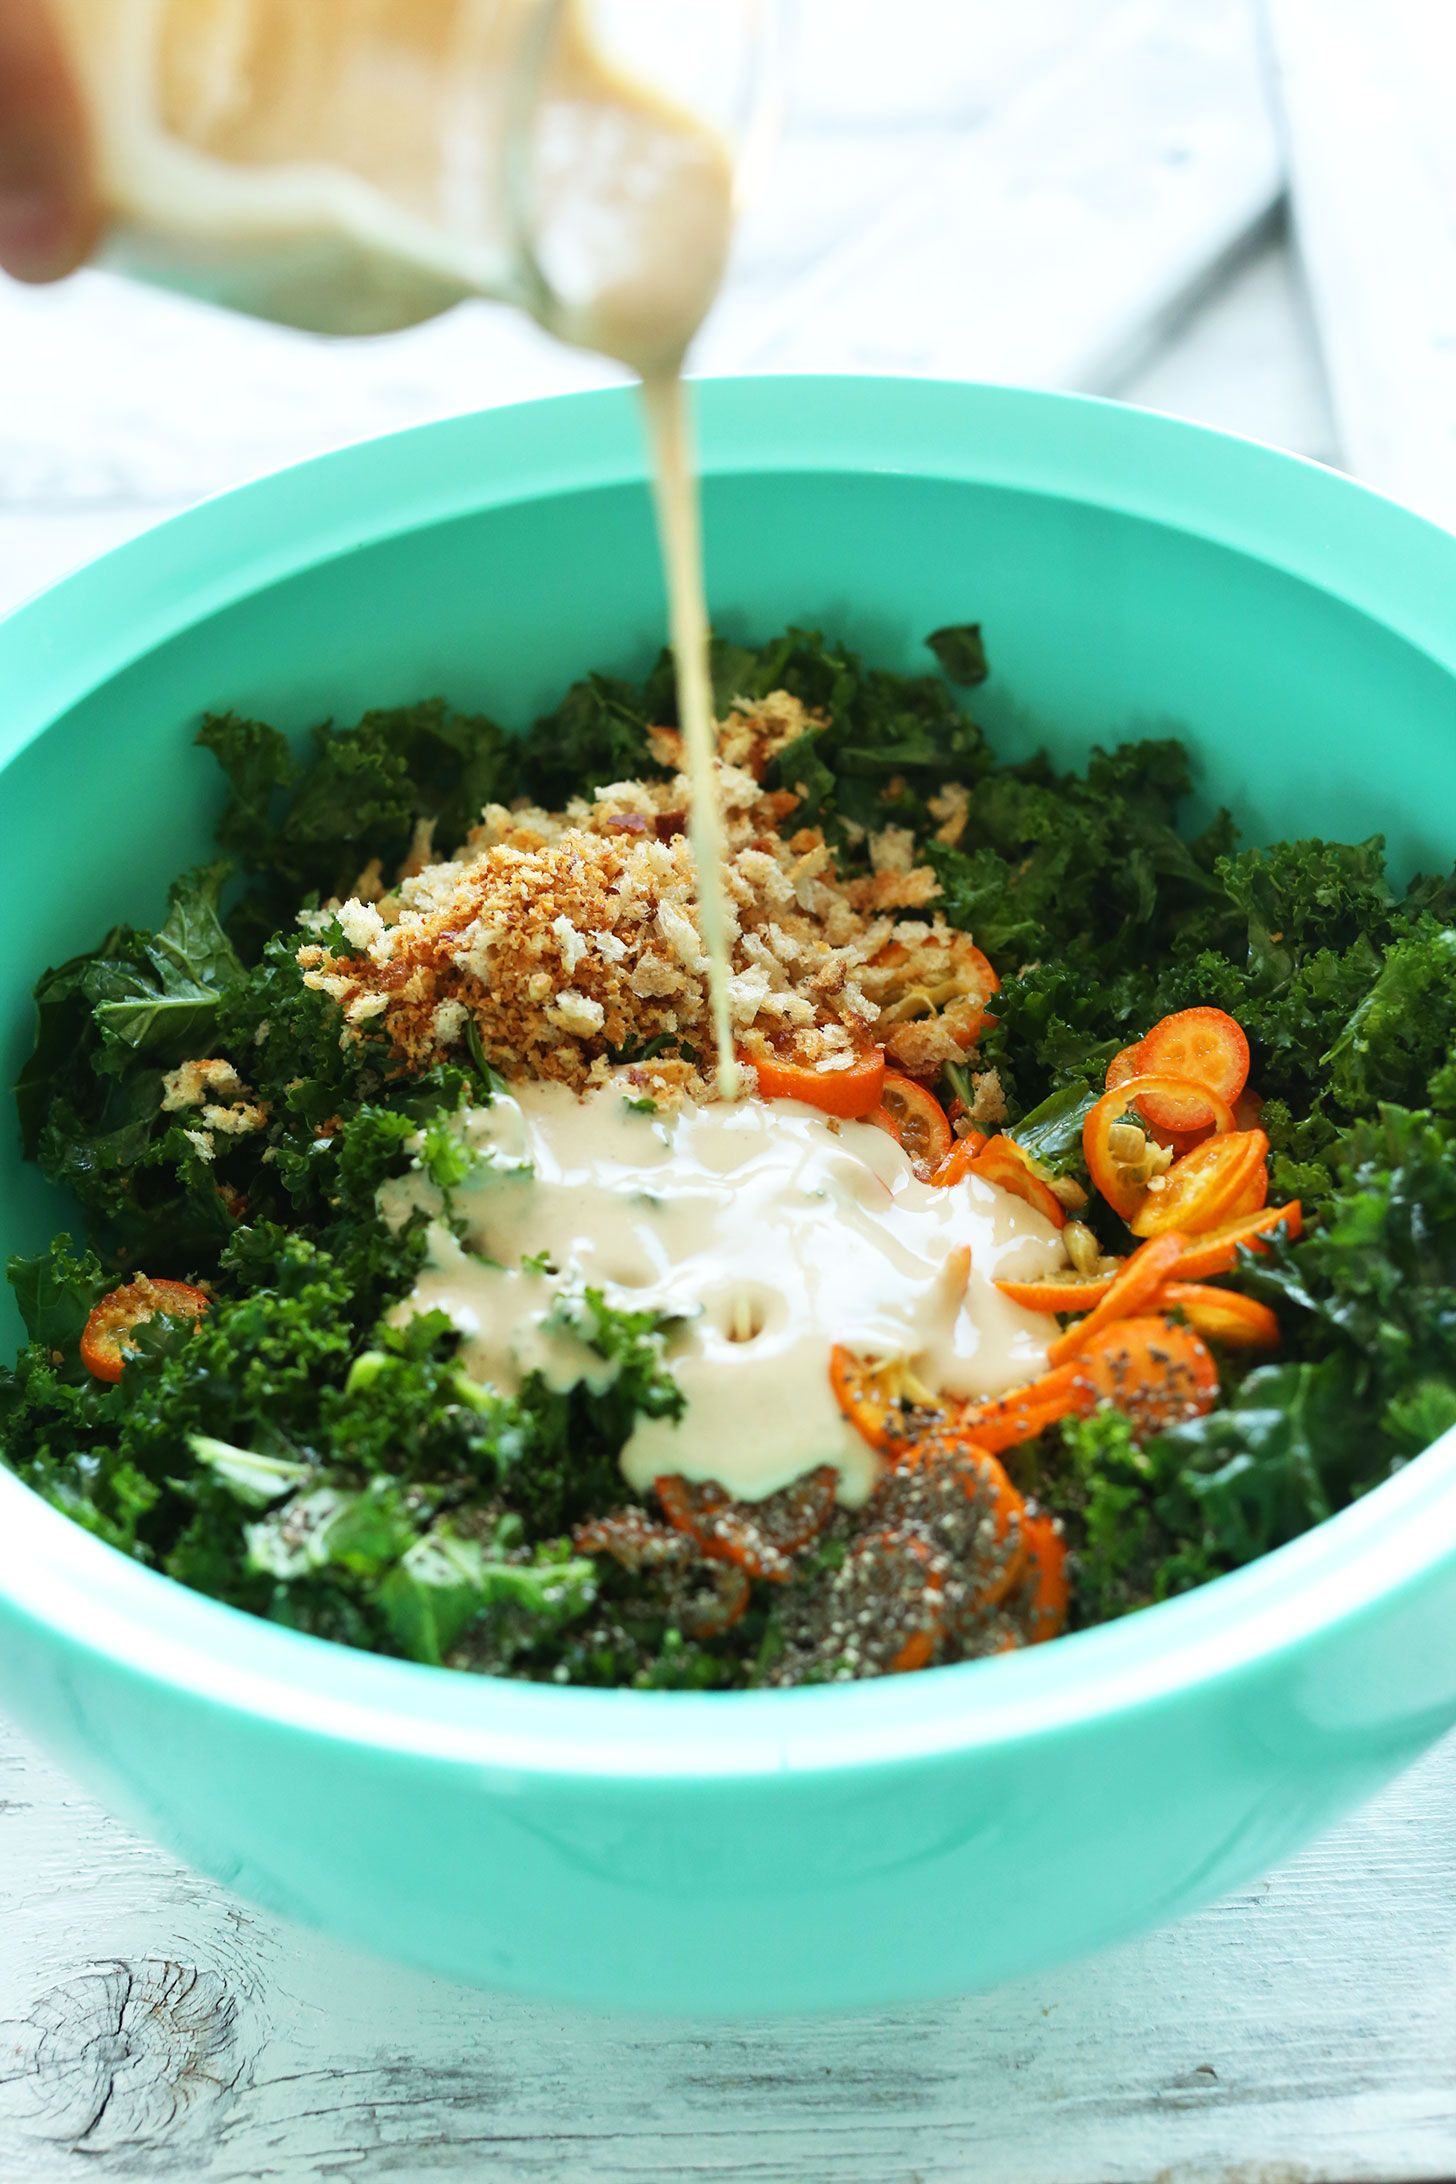 Kumquat Kale Salad With Tahini Dressing